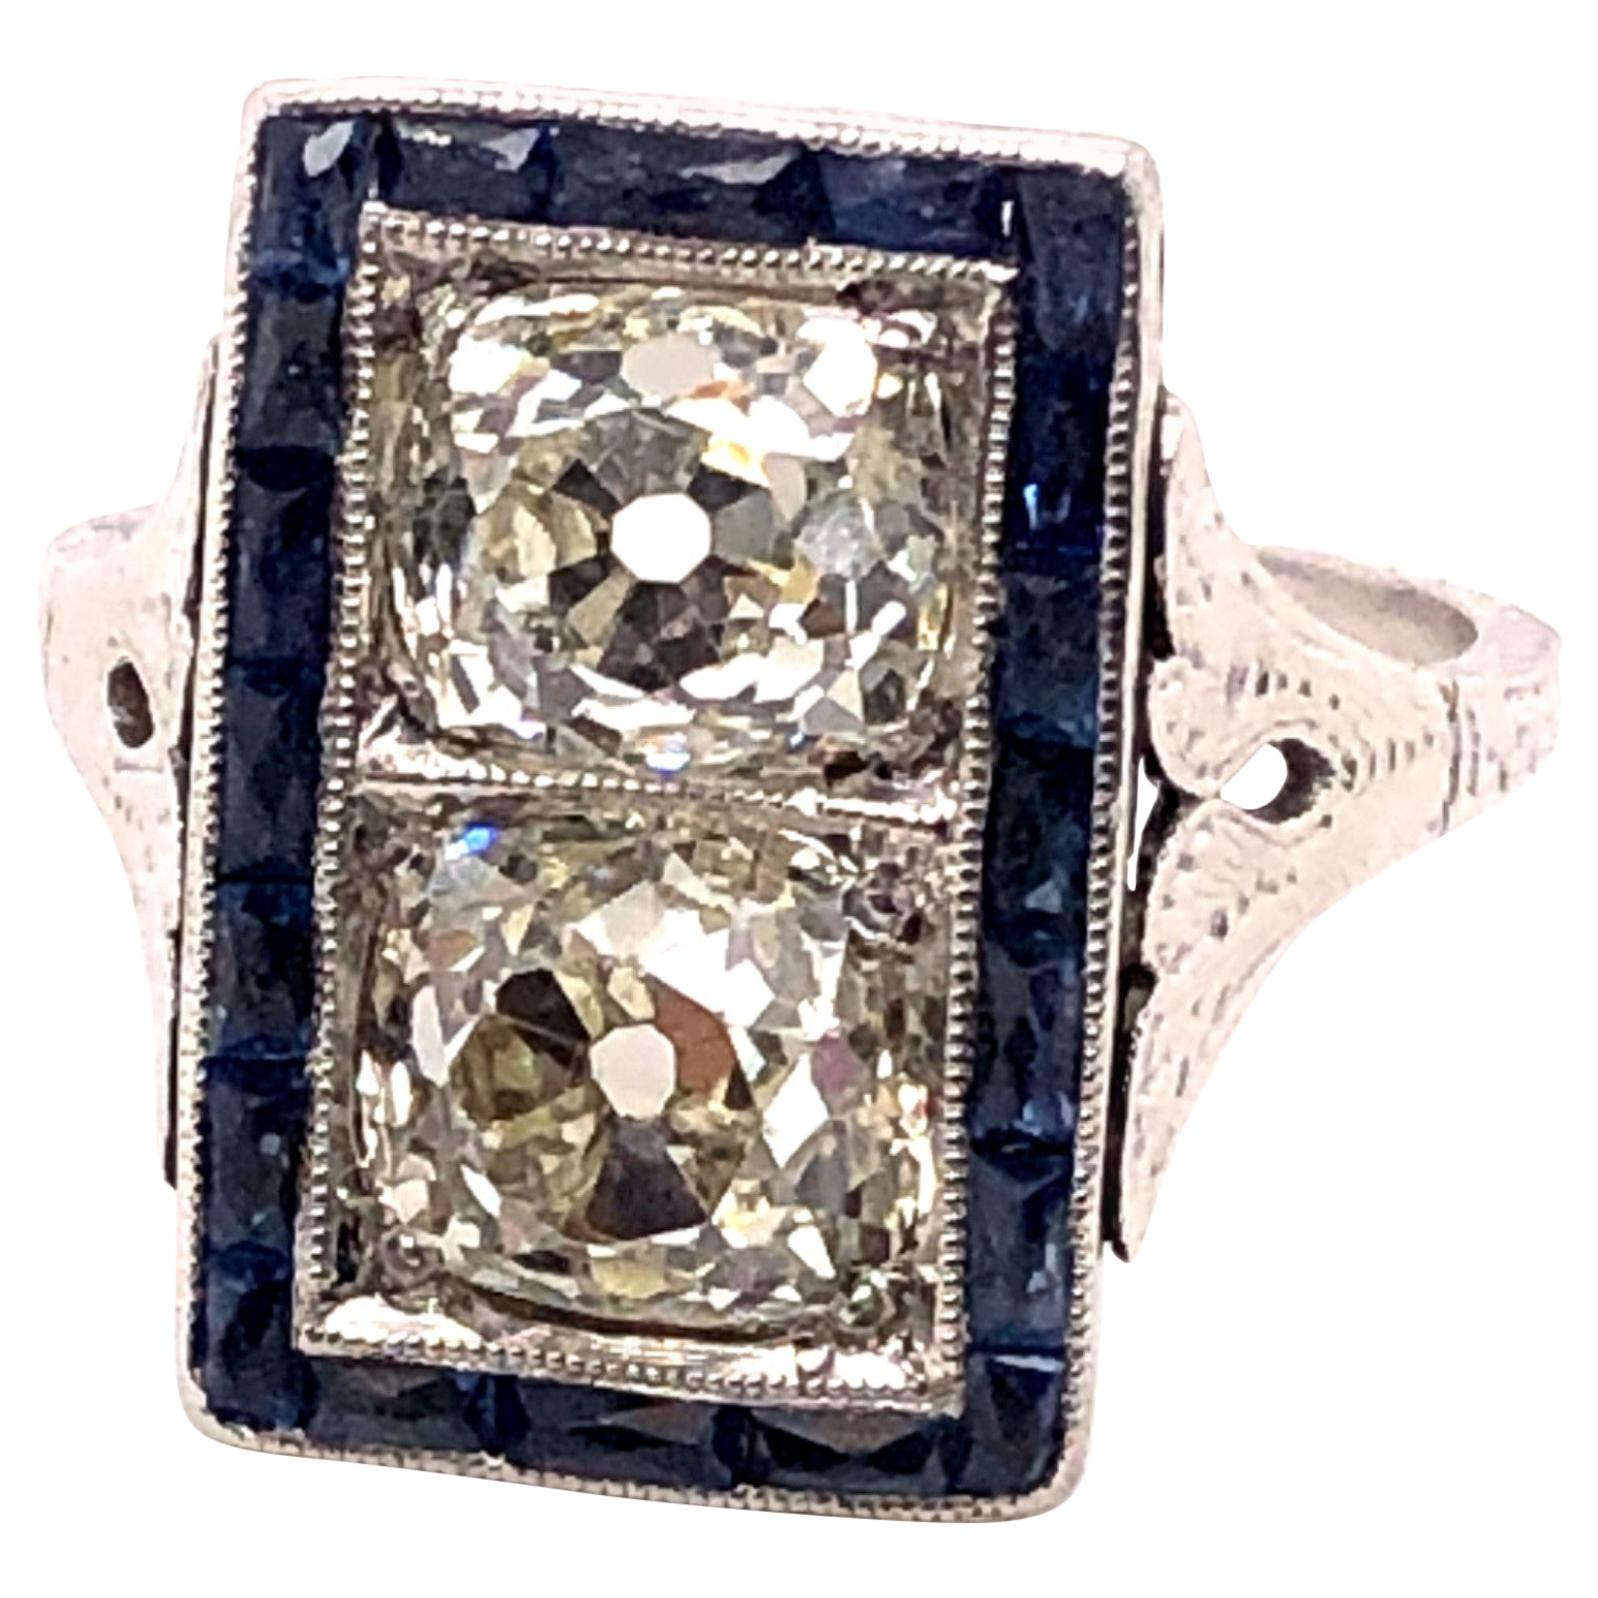 Art Deco 2.58 Carat Old Mine Cut Diamond and French Cut Sapphire Ring